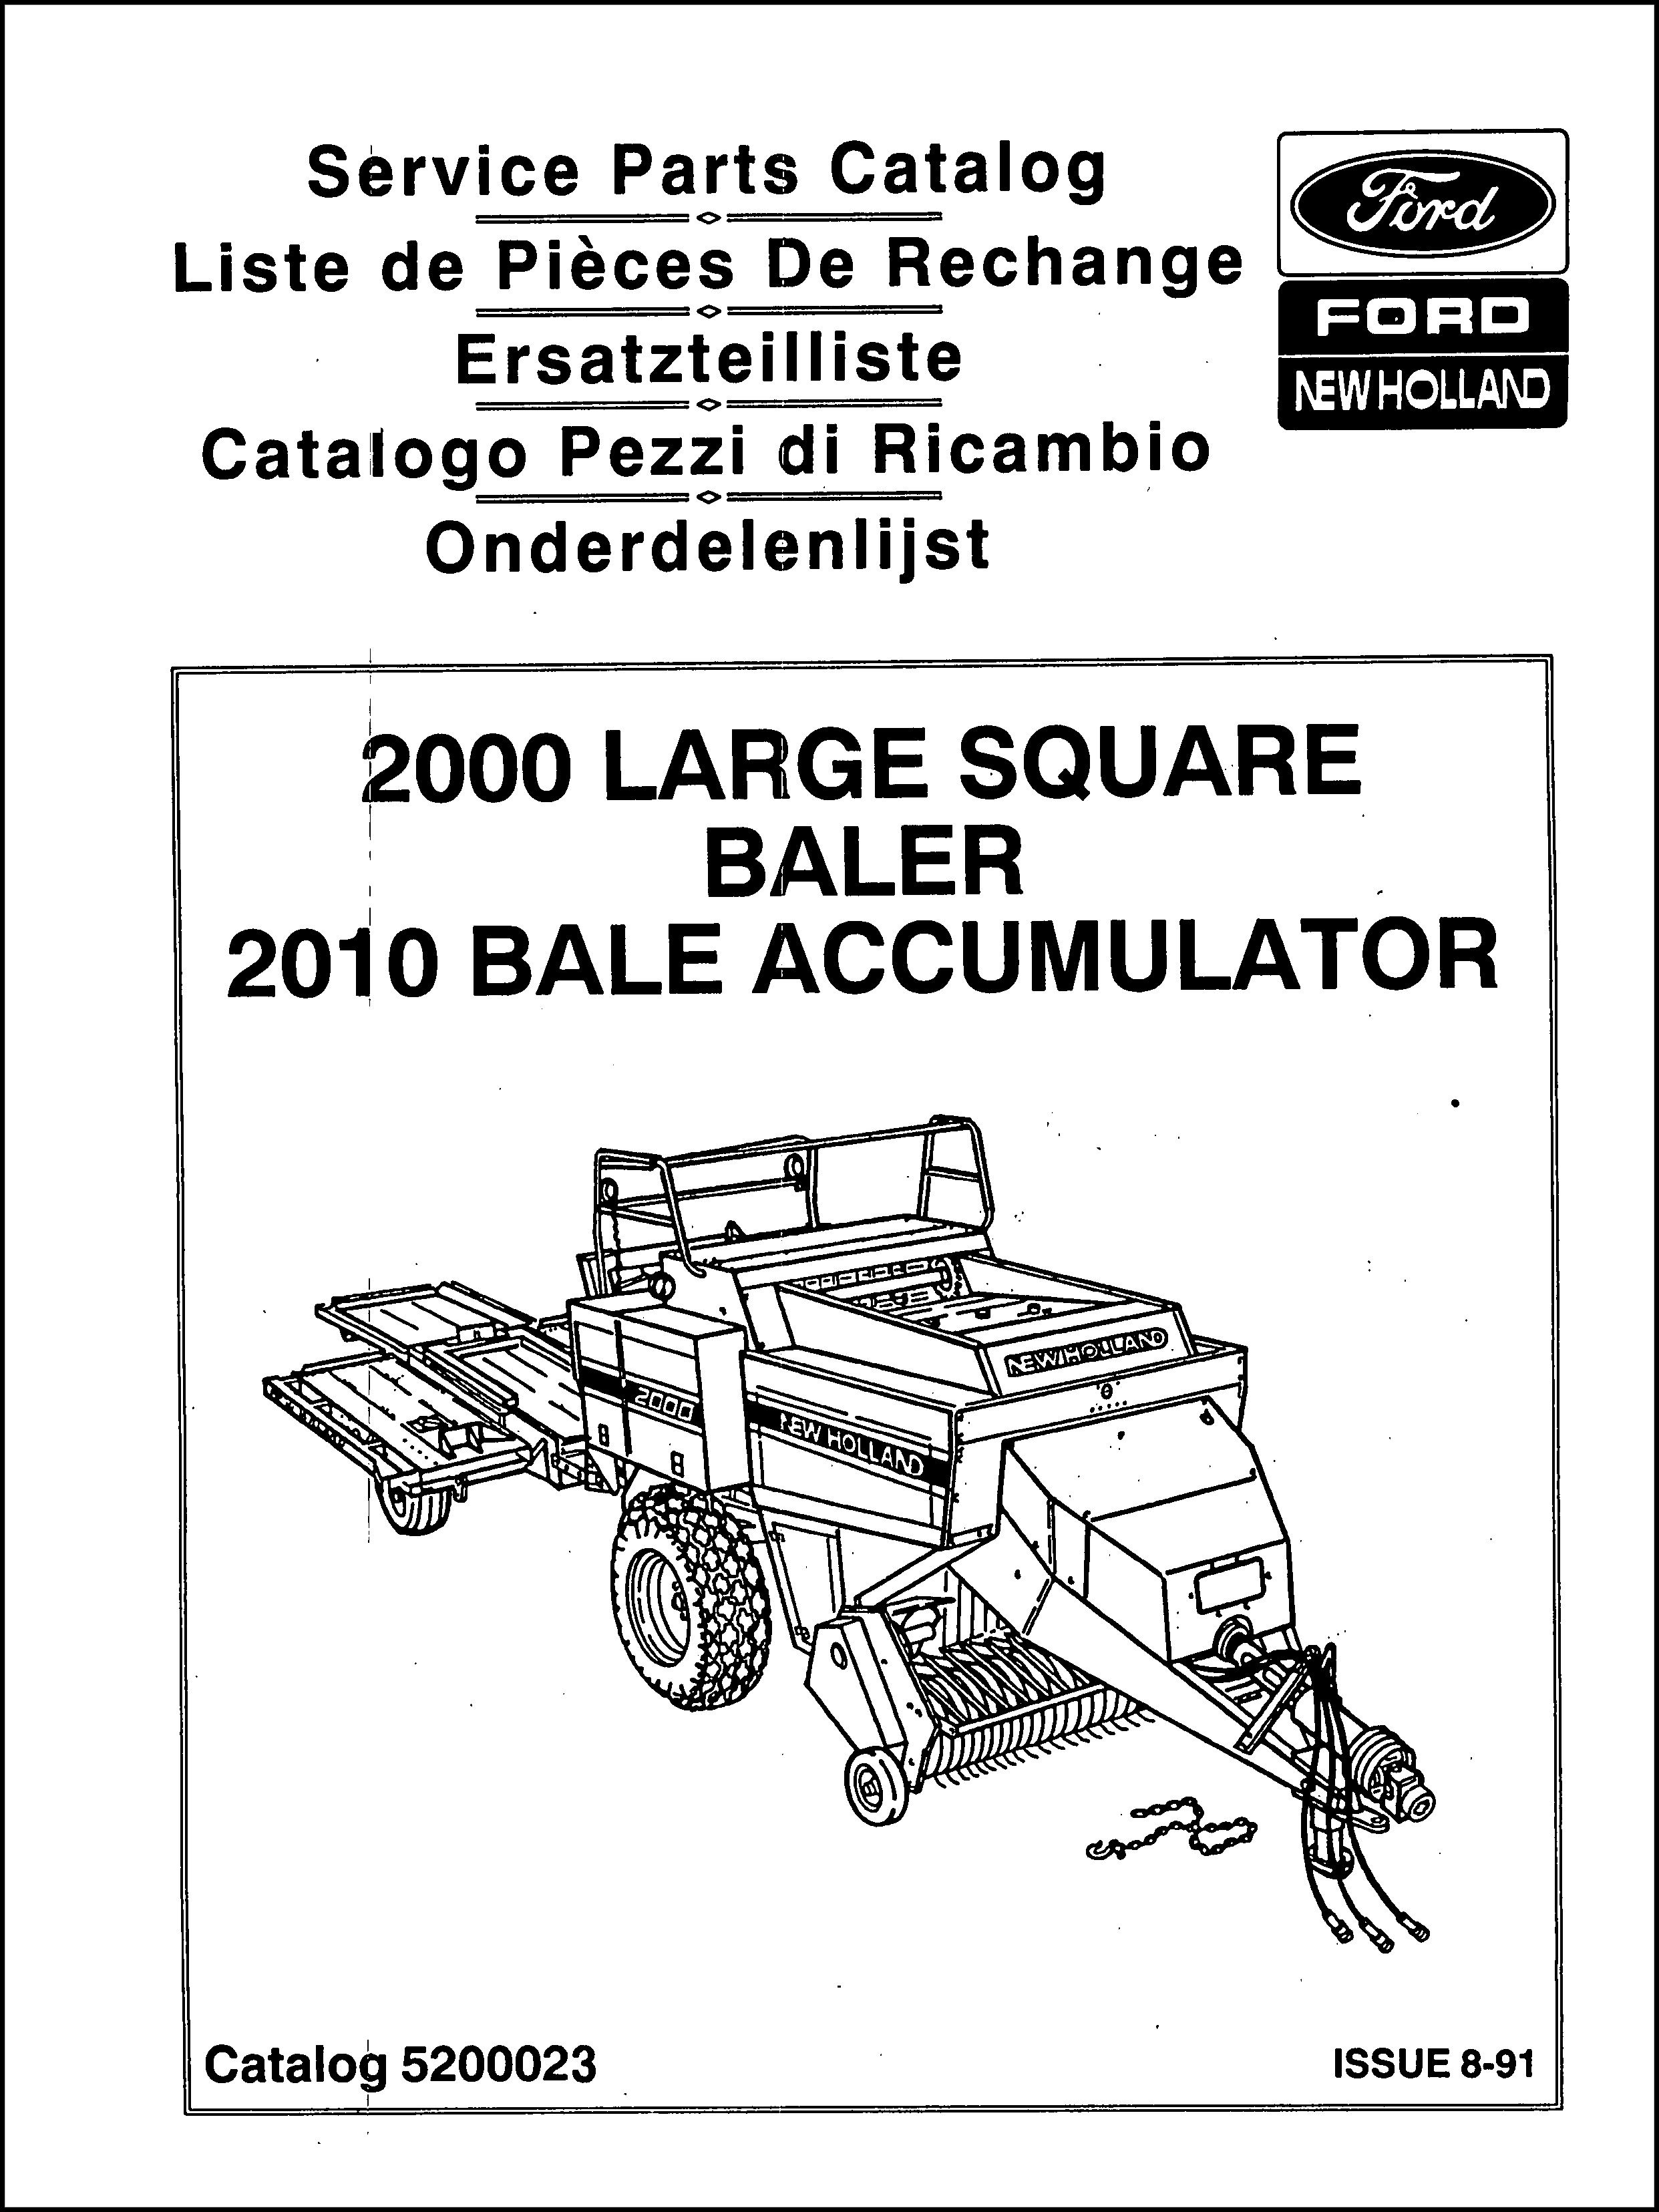 Ford New Holland Parts Manual For Service Big Baler